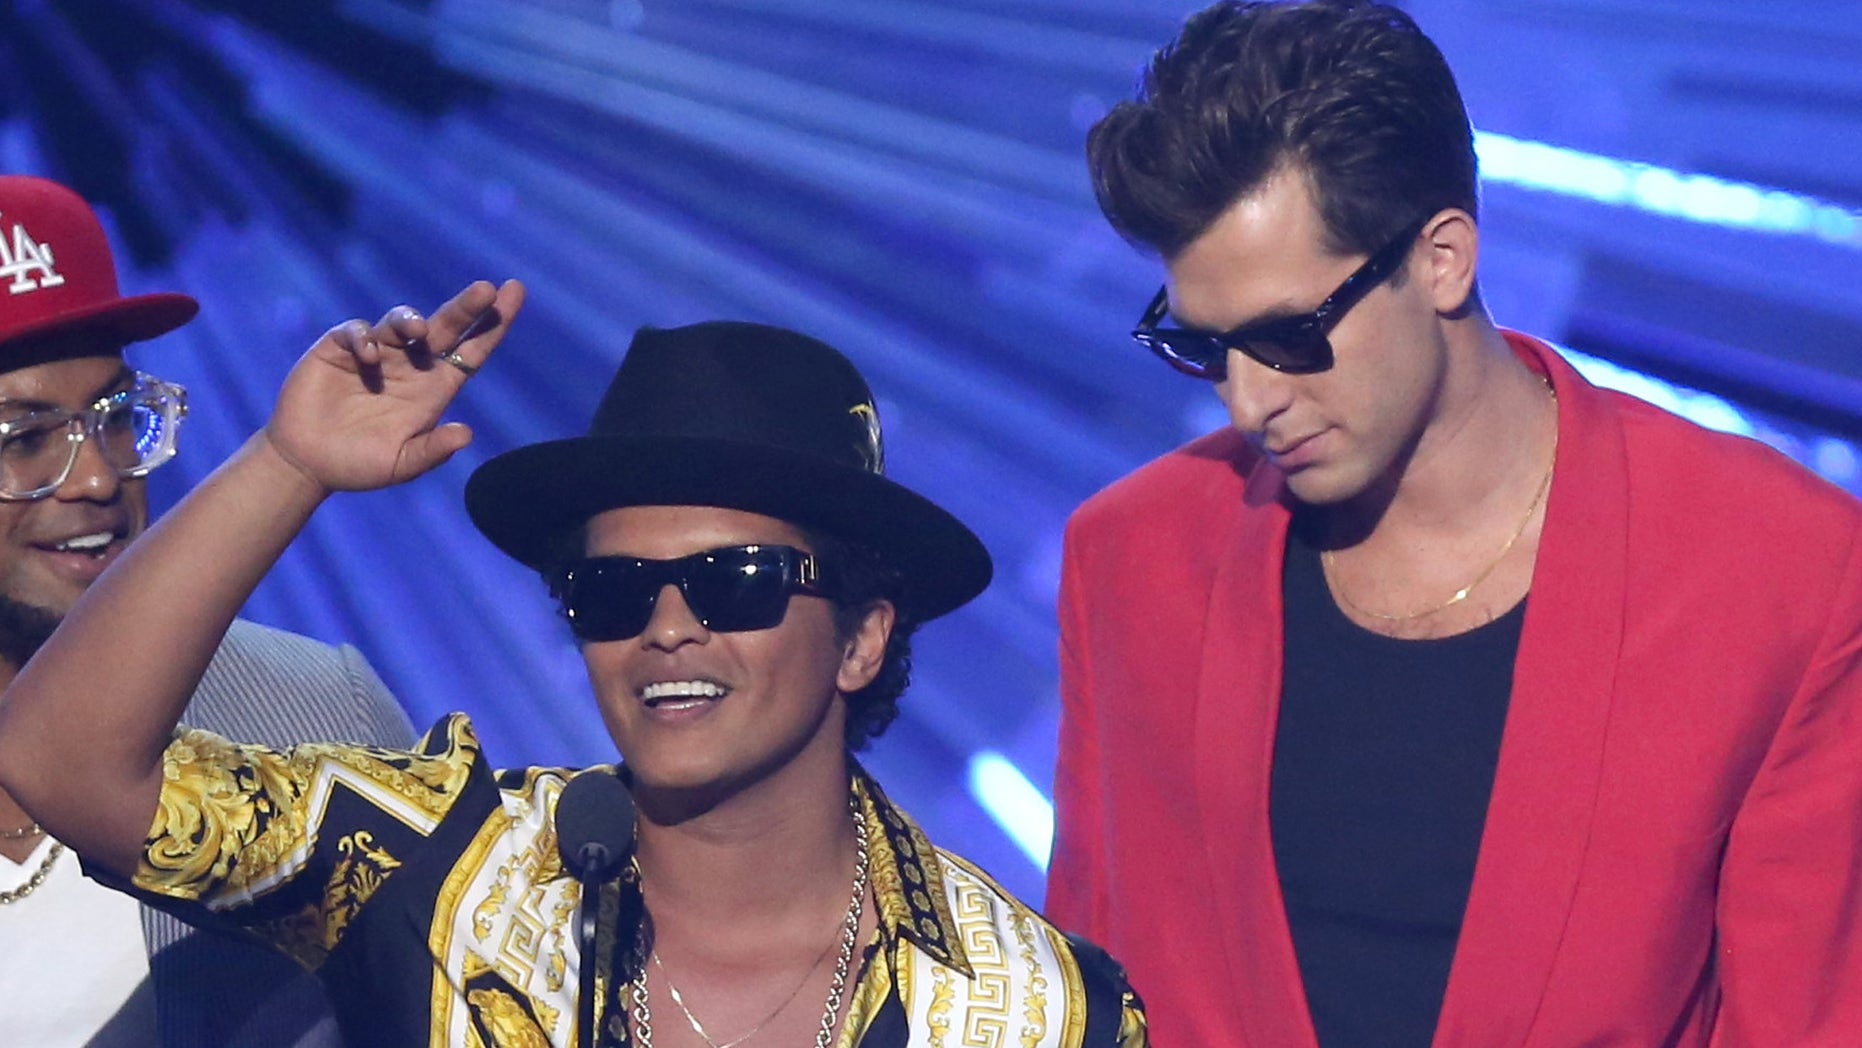 """FILE - In this Aug. 30, 2015, file photo, Bruno Mars, left, and Mark Ronson accept the award for male video of the year for âUptown Funkâ at the MTV Video Music Awards in Los Angeles. Ronson and Mars' """"Uptown Funk"""" is one of the nominees for record of the year at the Grammys on Feb. 15, 2016. (Photo by Matt Sayles/Invision/AP, File)"""